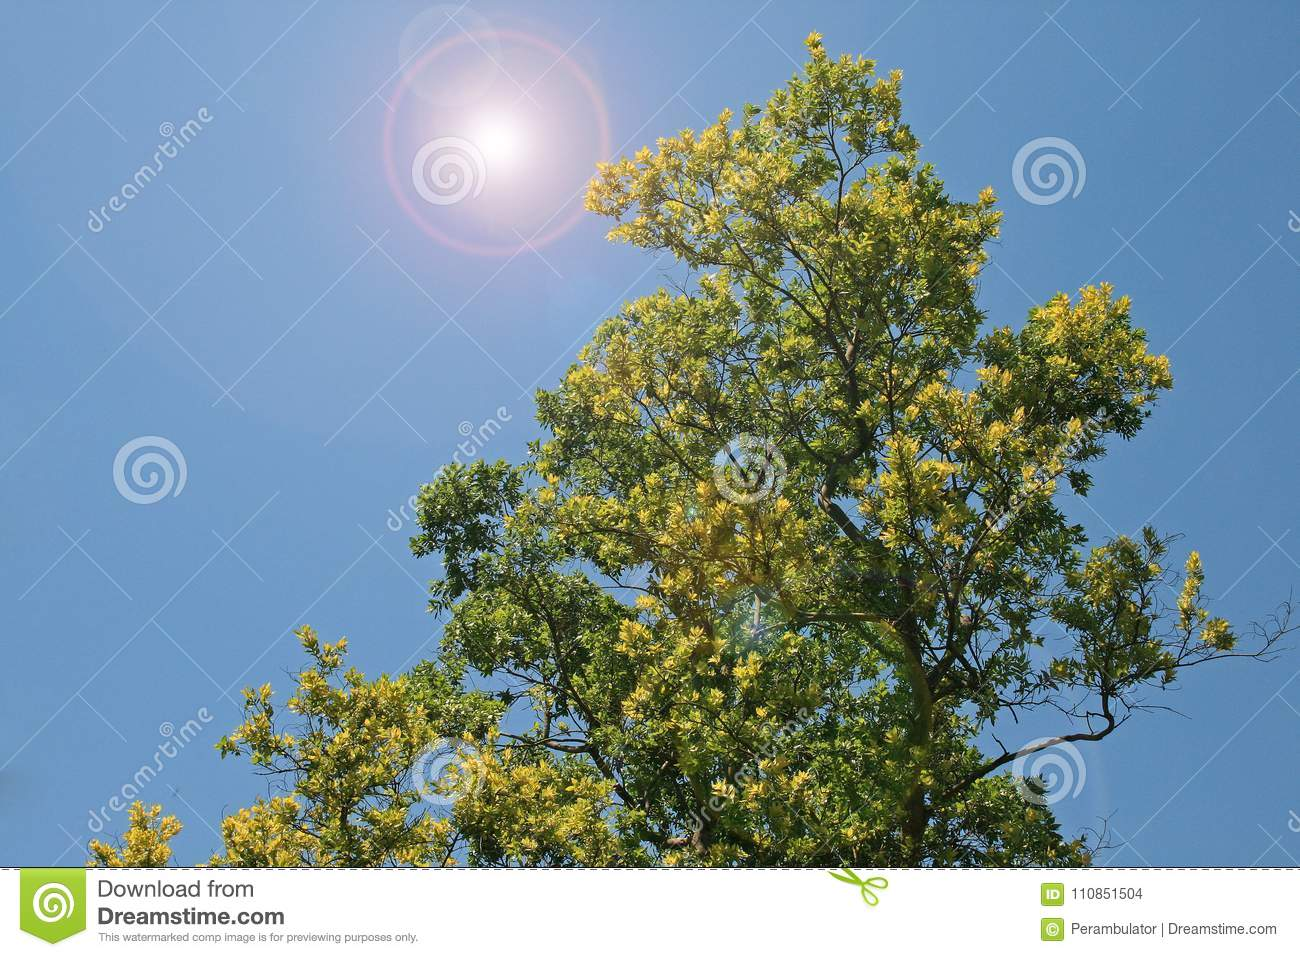 YELLOW AND GREEN TREE WITH ADDED LENS FLARE